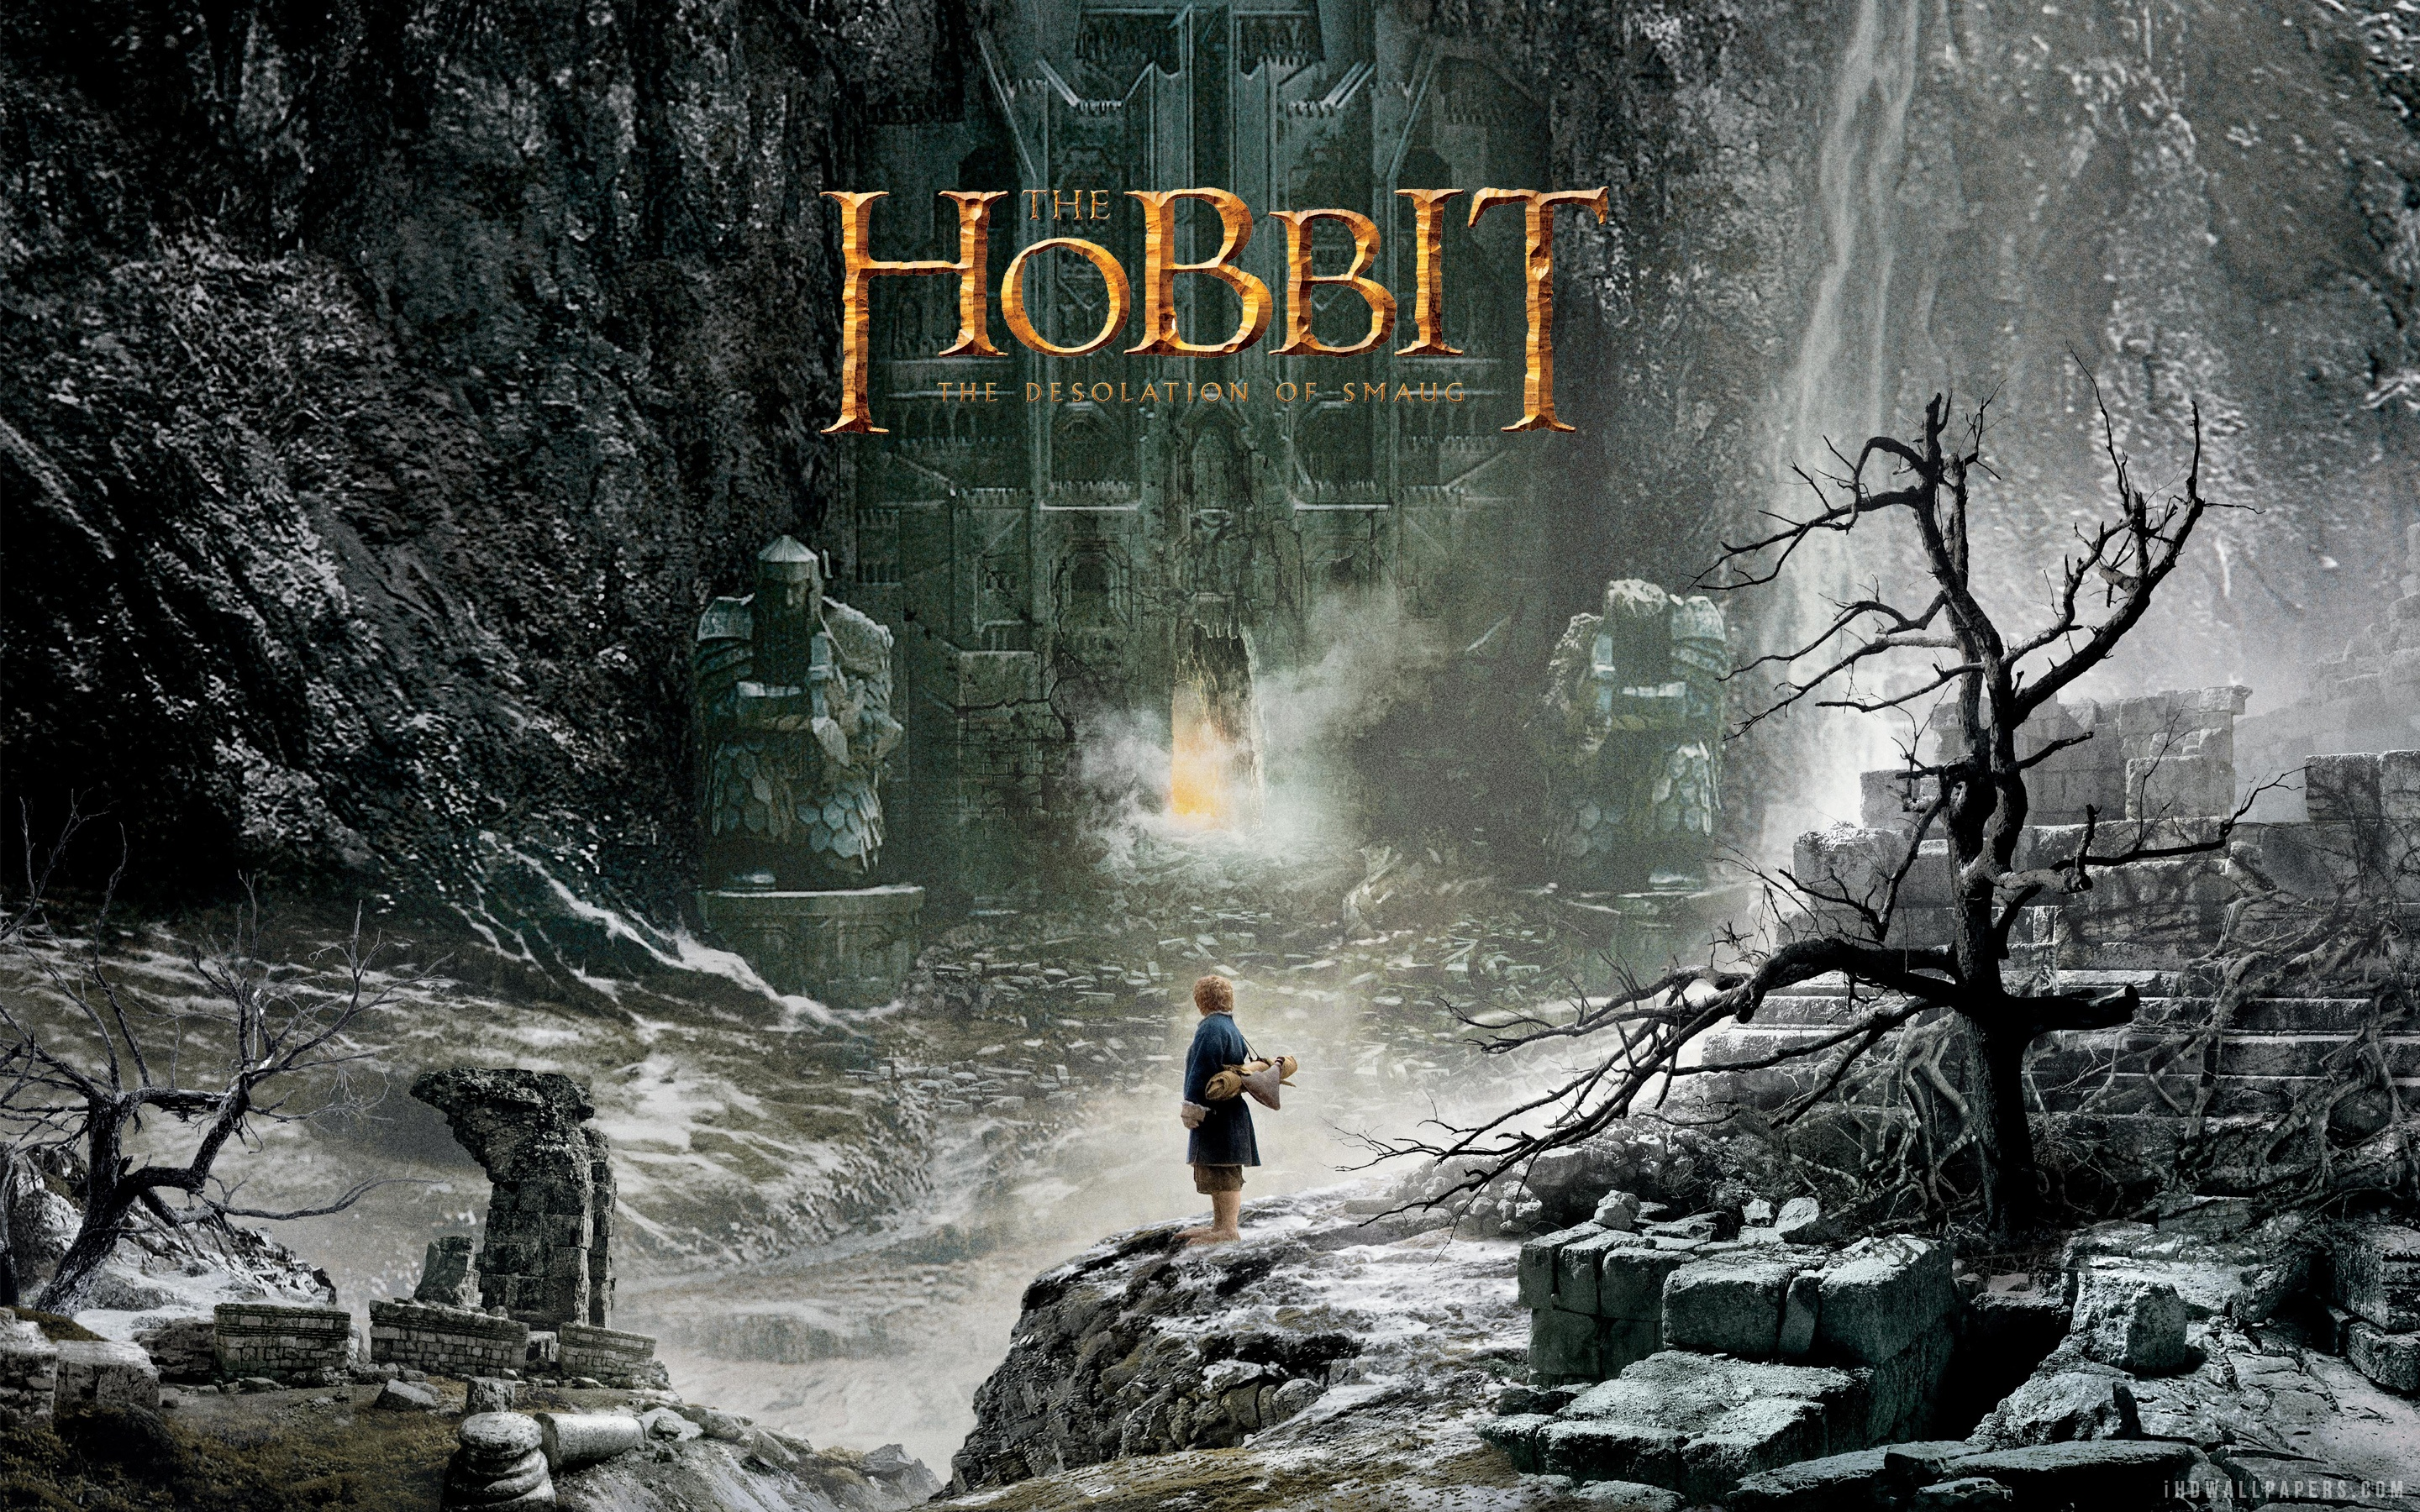 Lord Of The Rings The Desolation Of Smaug Cast